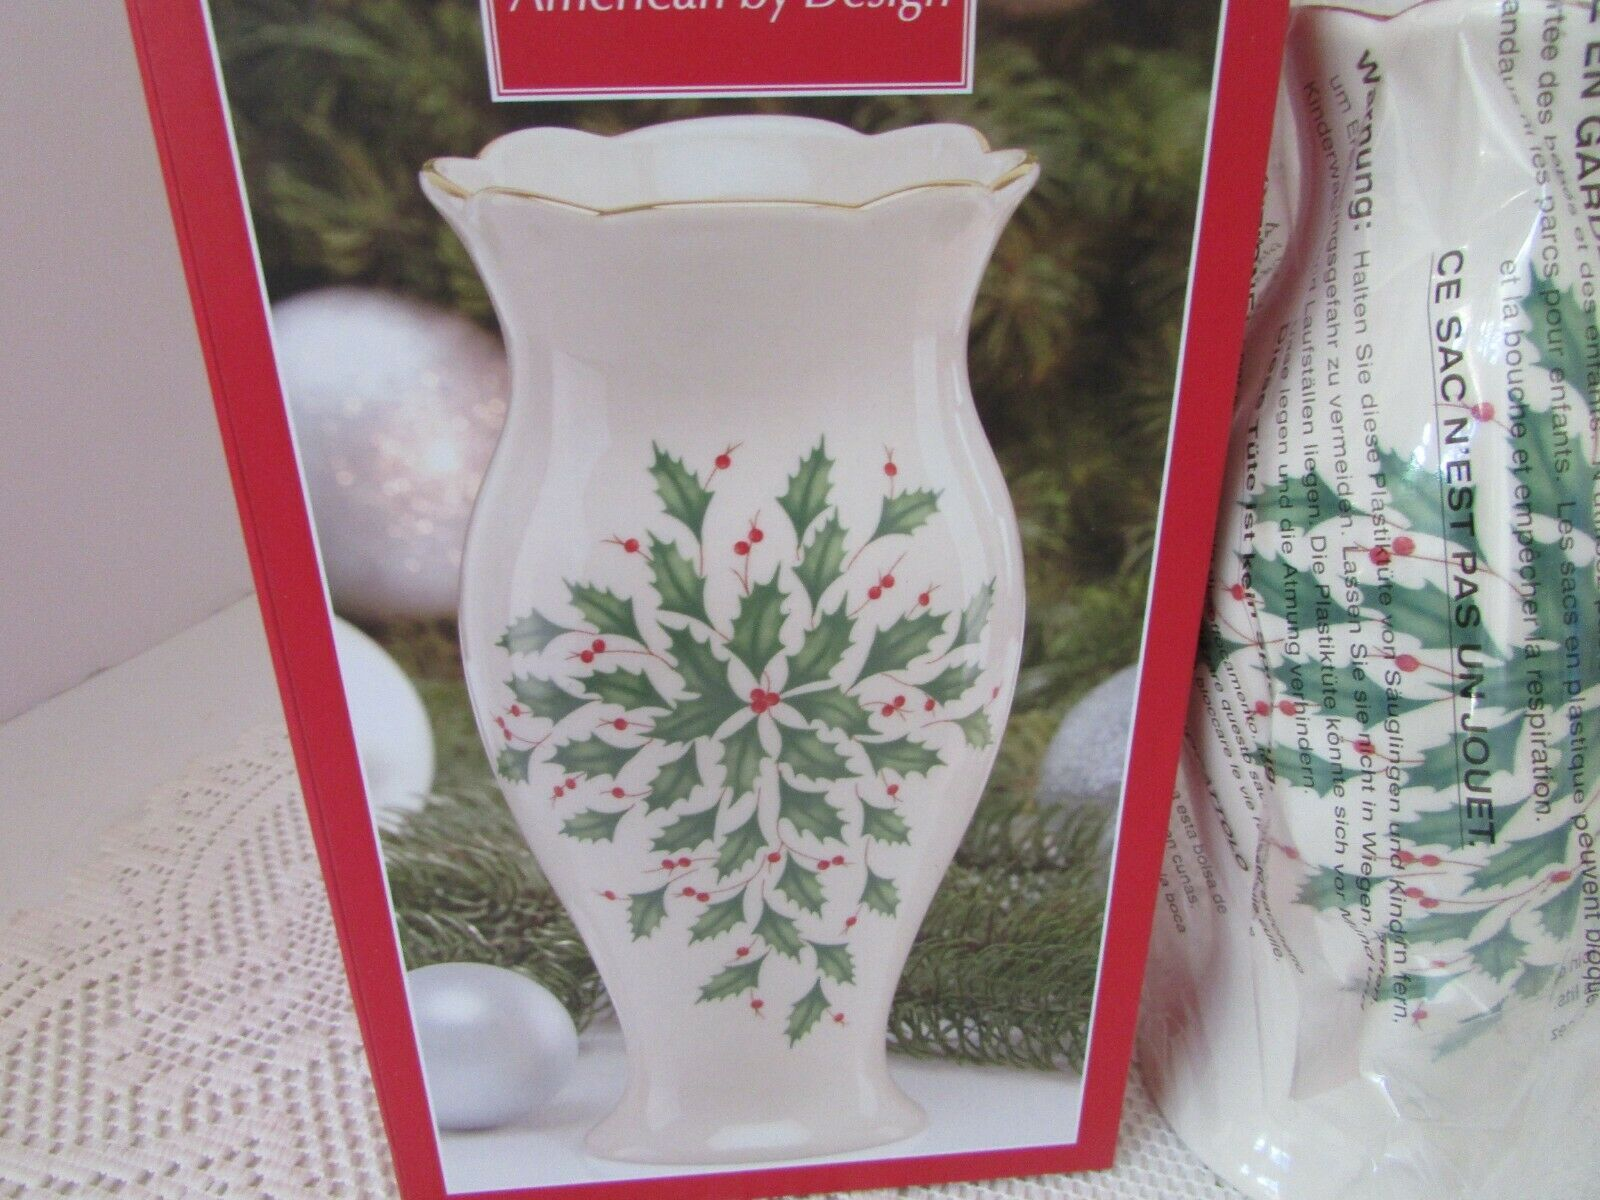 "LENOX CHINA AMERICAN BY DESIGN HOLIDAY LARGE VASE 8.5"" HOLLY BERRY NIB"